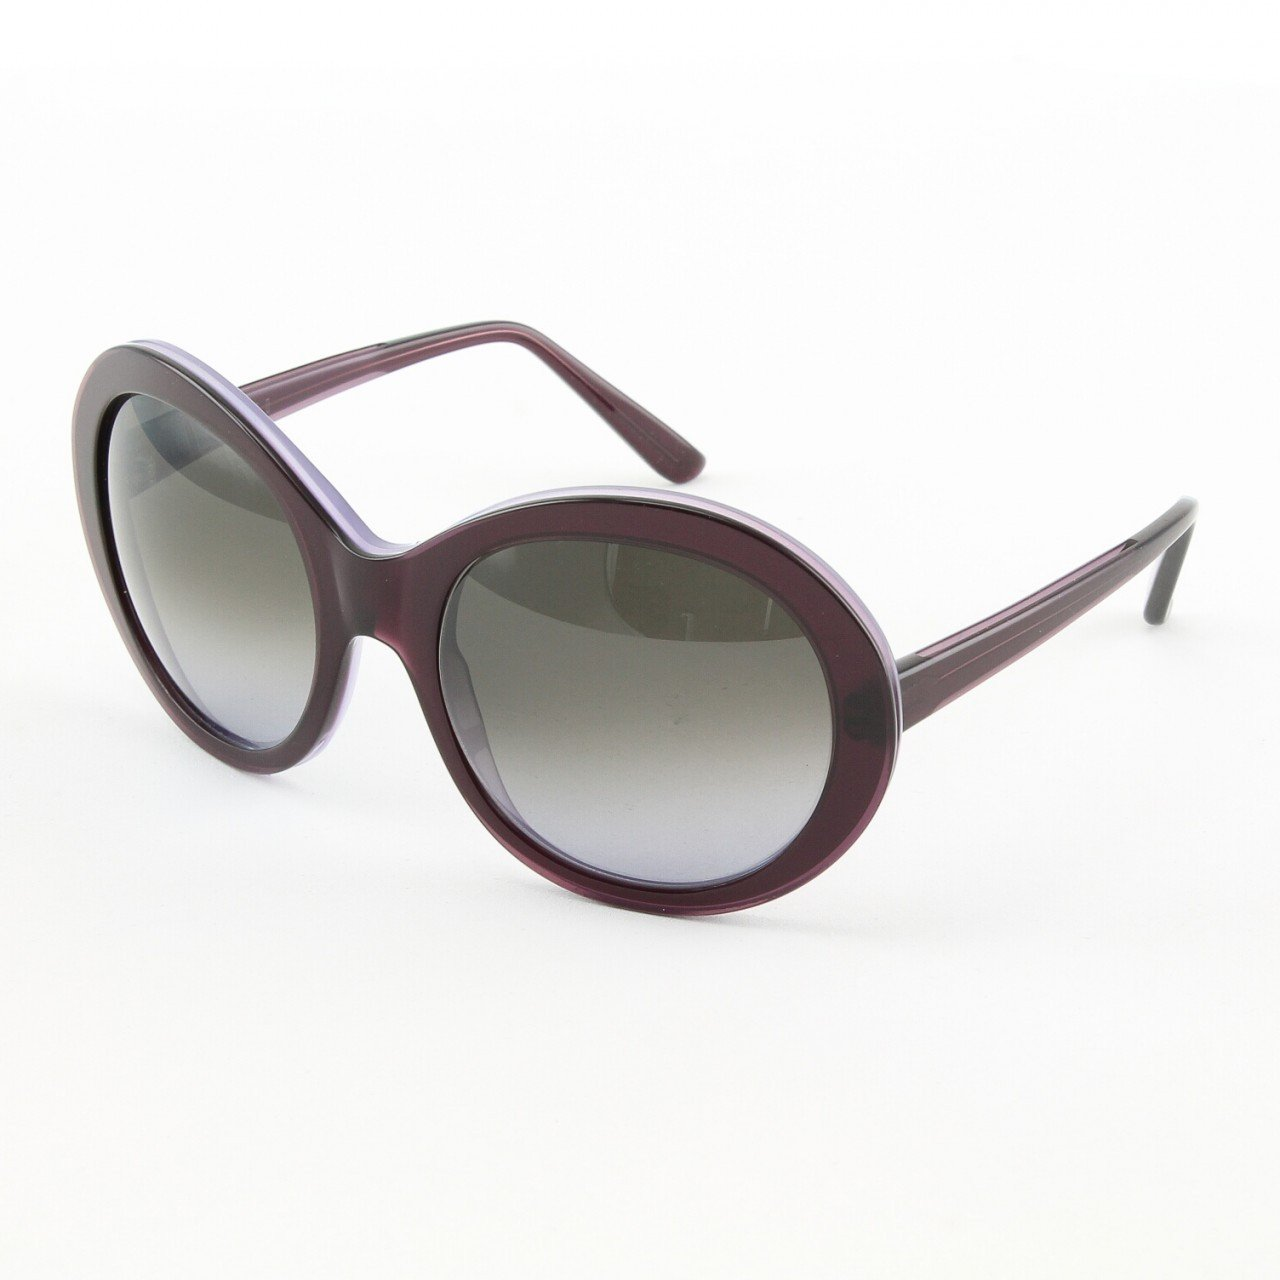 Marni MA162S Sunglasses Col. 12 Oversized Deep Violet Frame with Gray Gradient Lenses